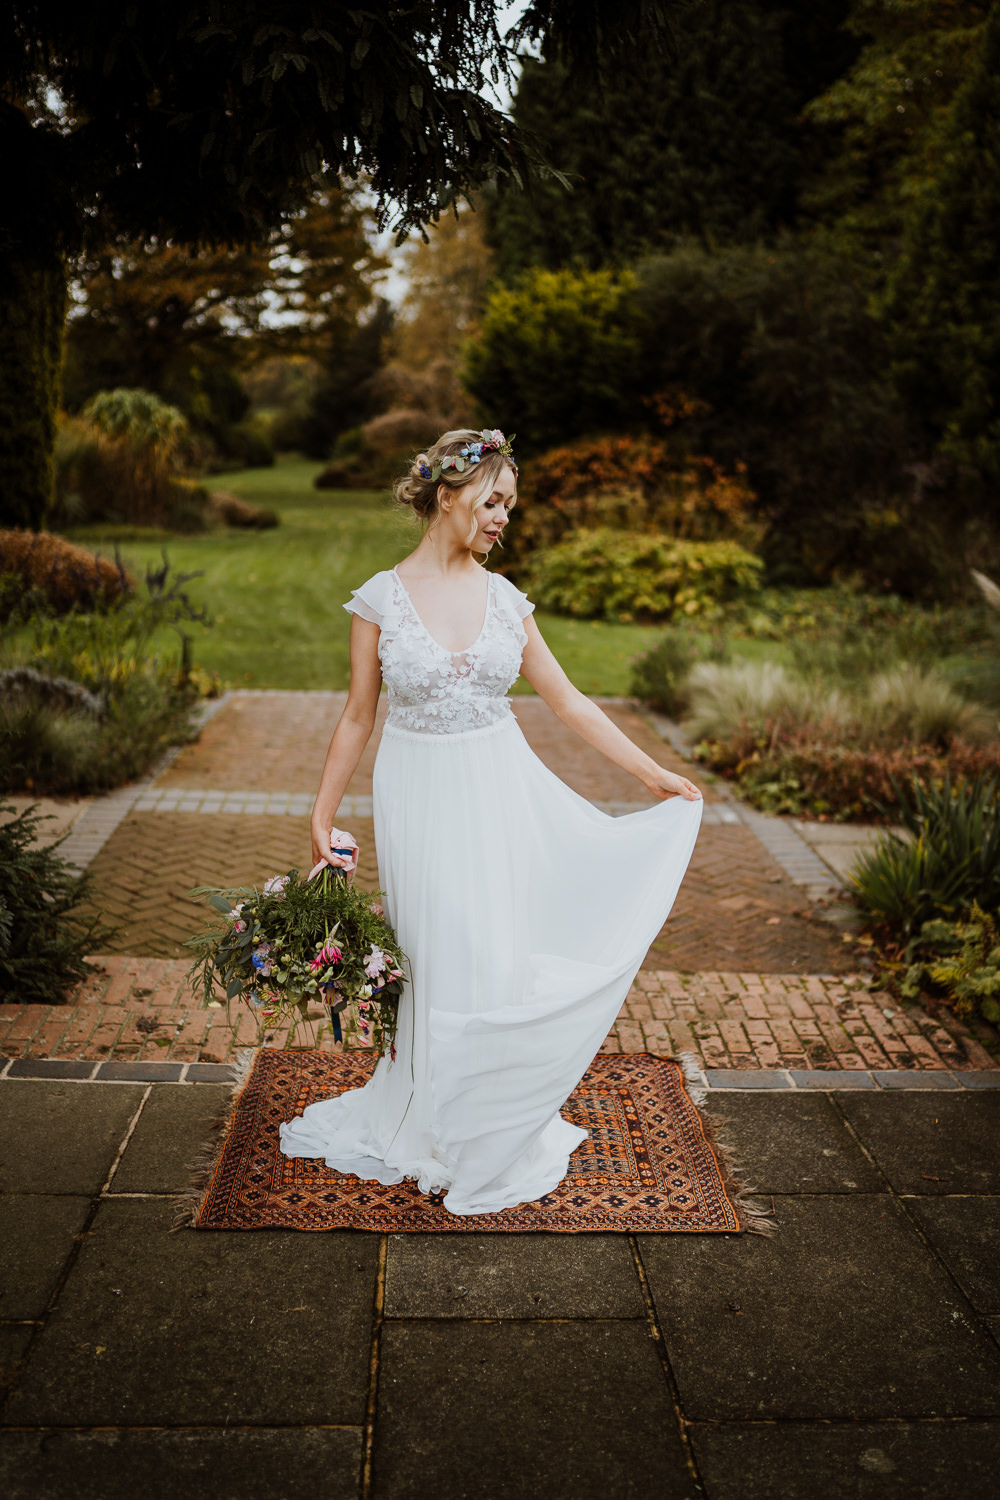 Bride Bridal Dress Gown Flutter Sleeves Lace Up Low Back Great Comp Garden Wedding Nicola Dawson Photography